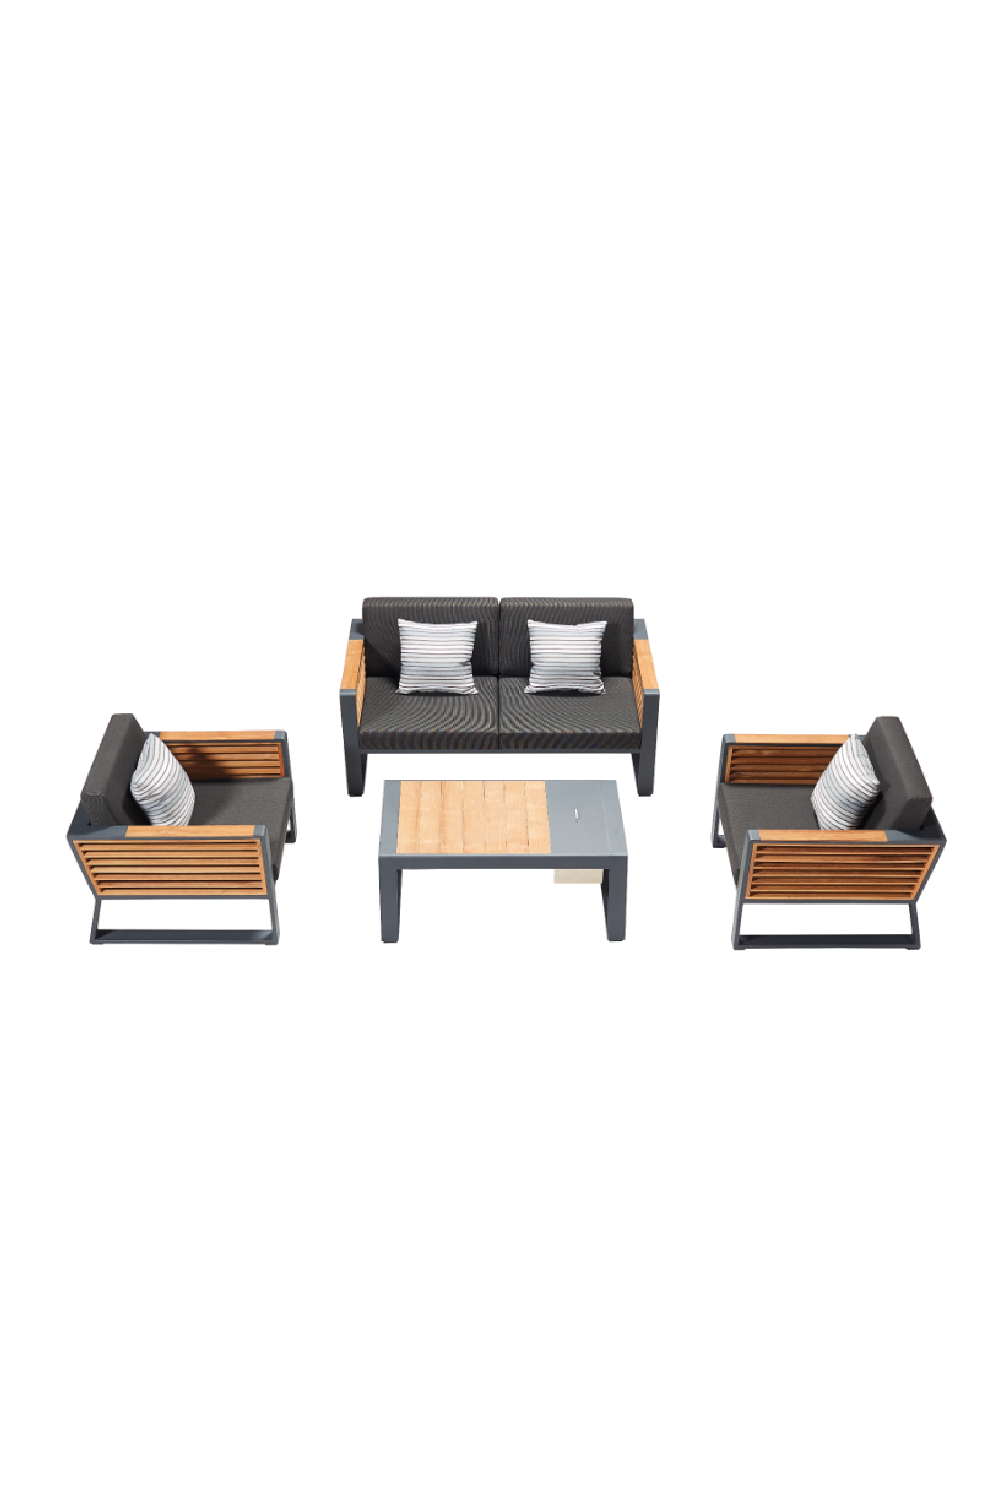 2-Seater Lounge Outdoor Set | Higold New York